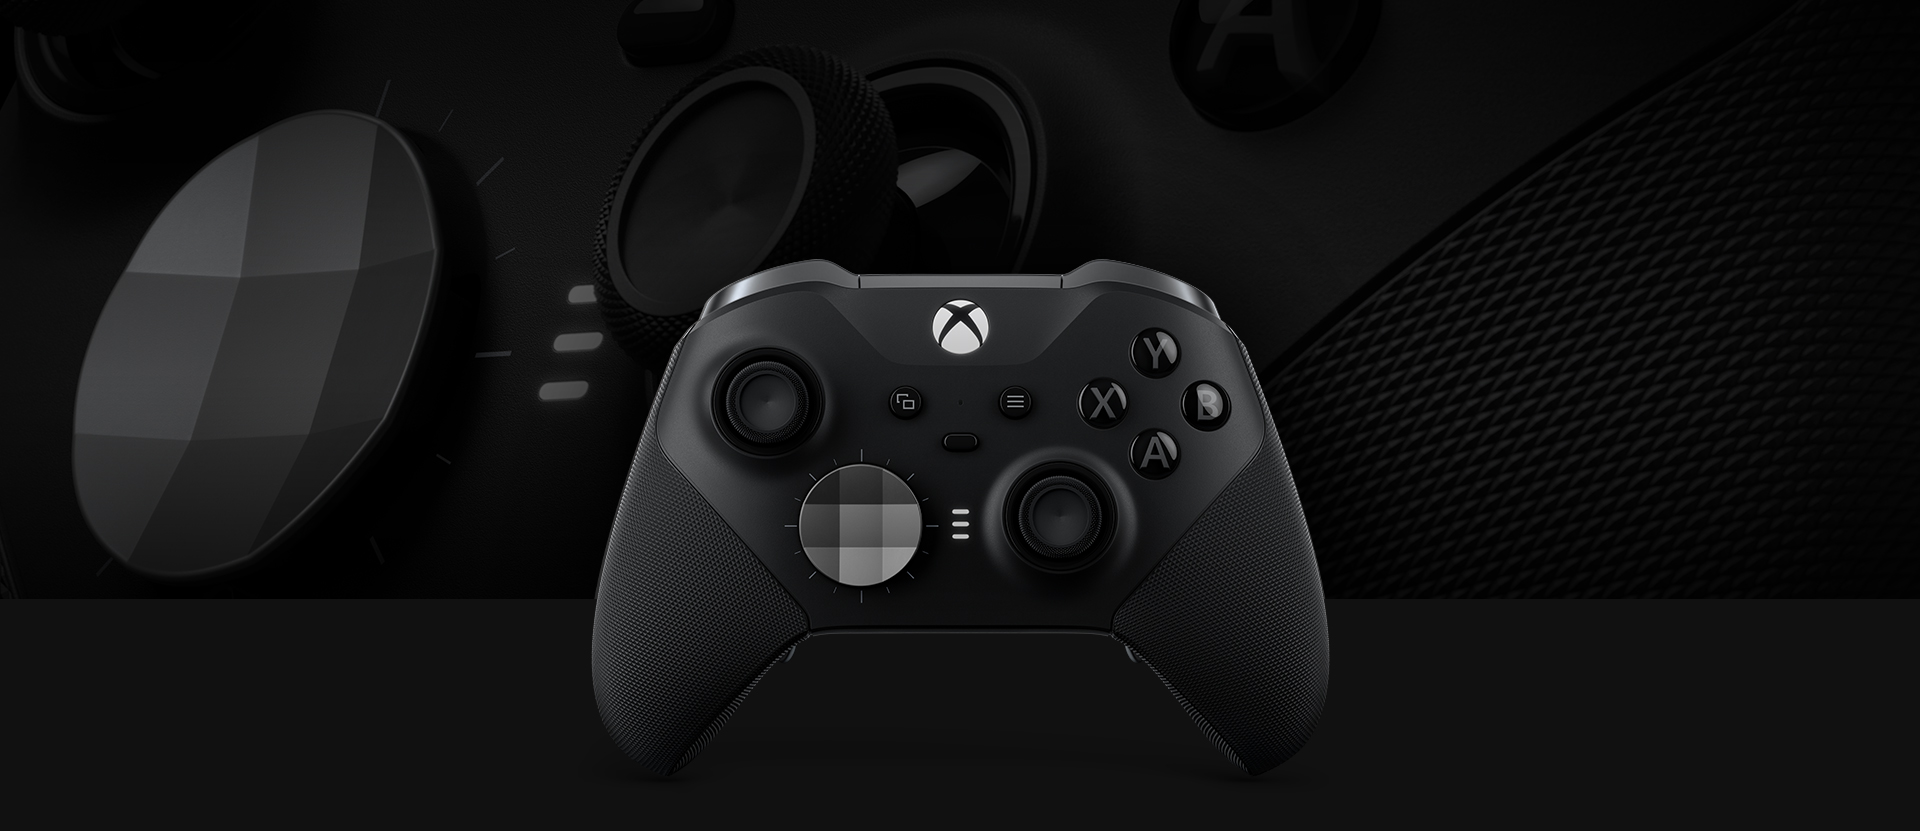 Front view of the Xbox Elite Wireless controller series 2 with a close up of the controller in the background